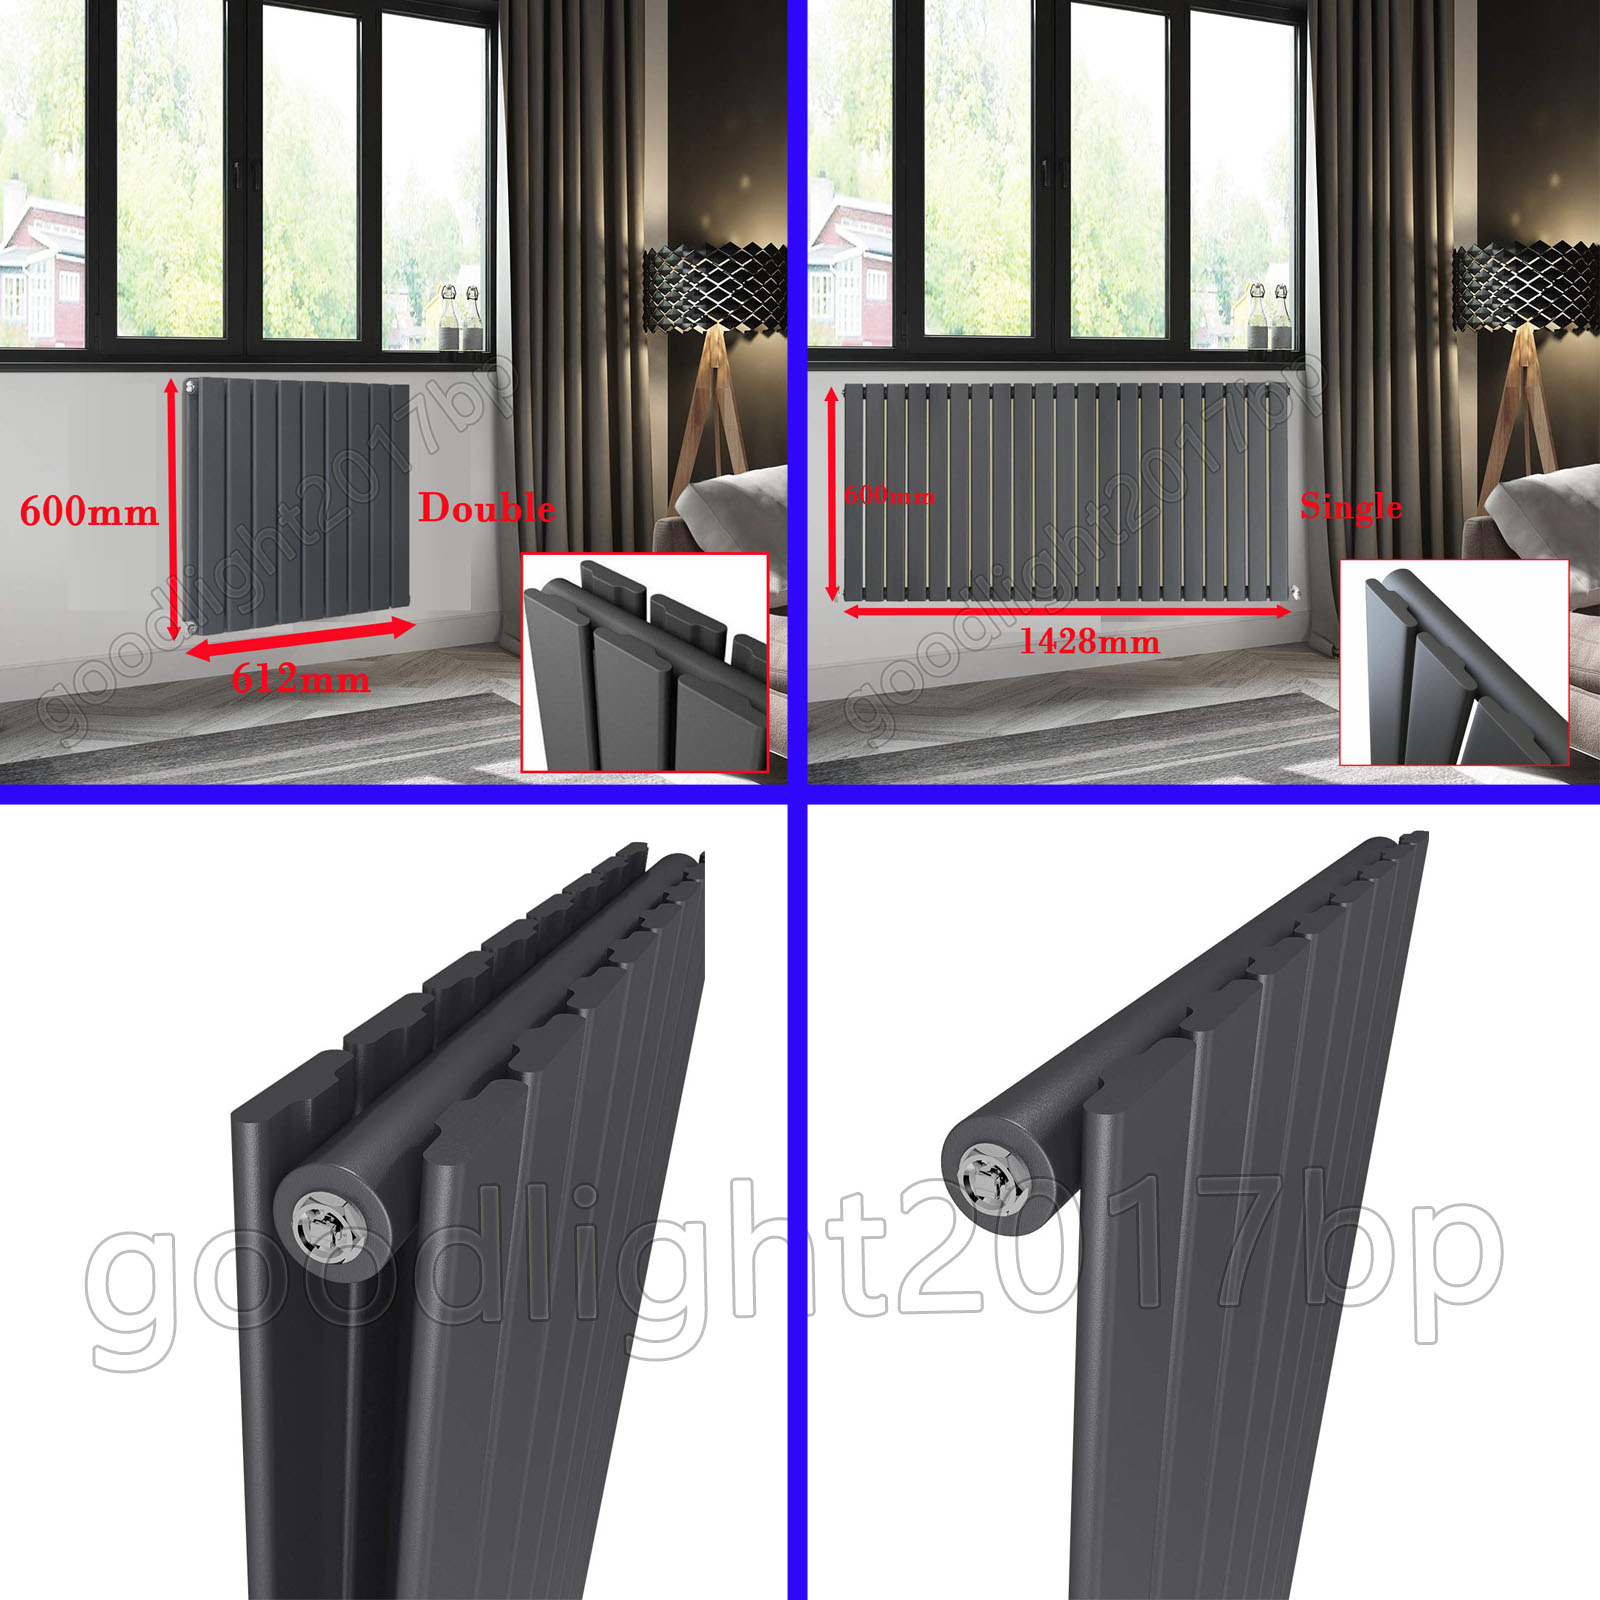 Ideal For Bathroom Living Room Modern Central Heating Radiators Hallway Kitchen Column Radiator Anthracite 600x612mm Double Panel Heater Designer Vertical Radiator Wall Mounted Building Supplies Heating Cooling